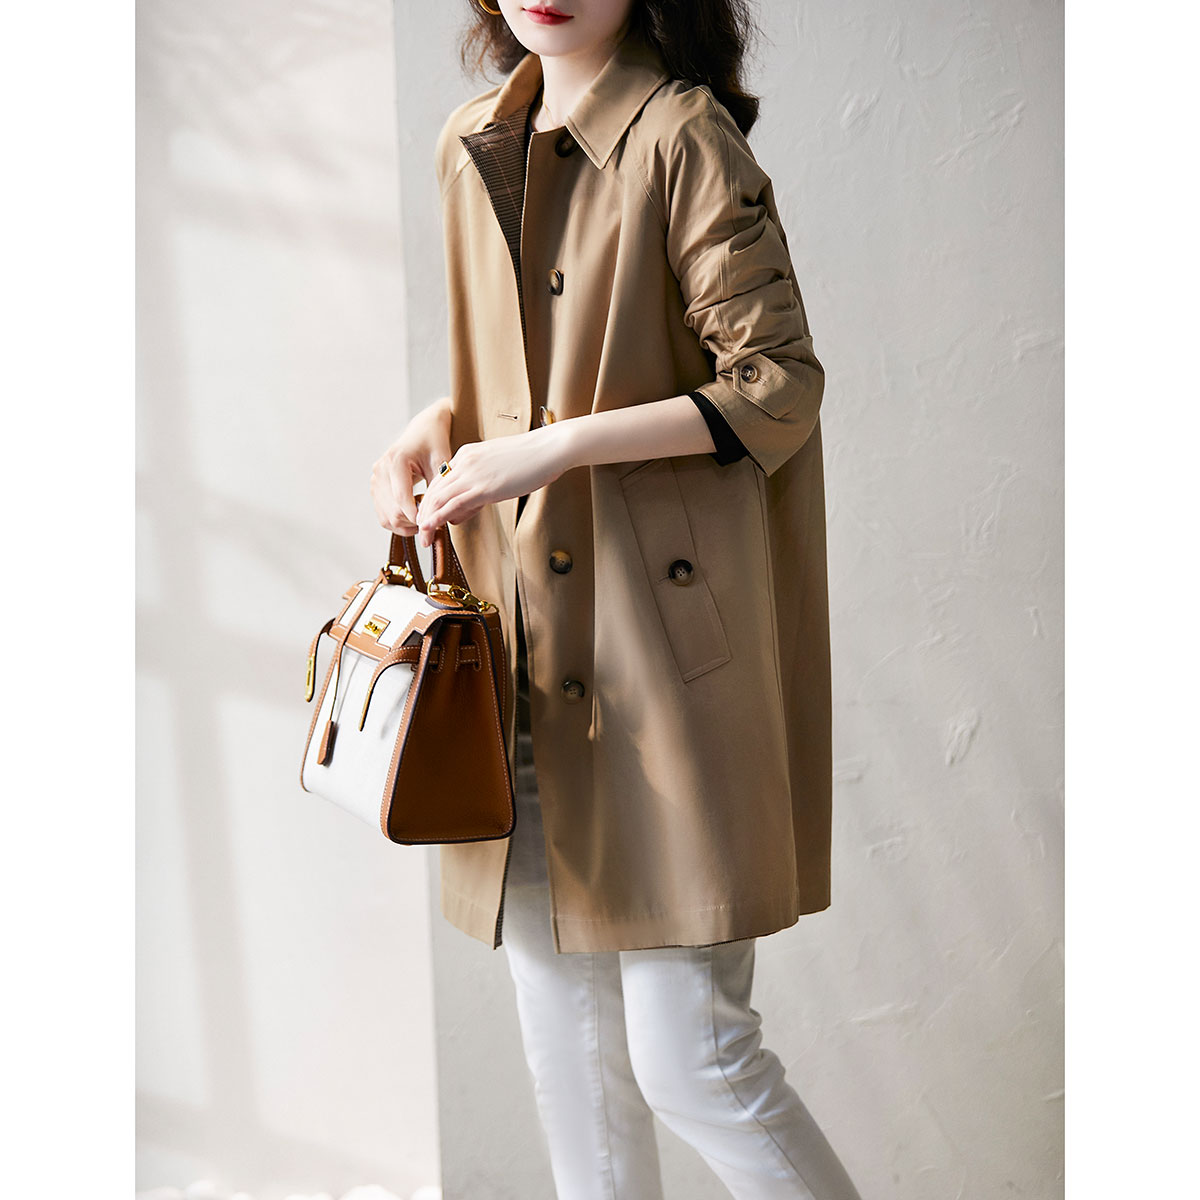 Xiaohan Ge I spring and Autumn trench coat jacket female medium length British wind feeling wild foreign air FY317162AG